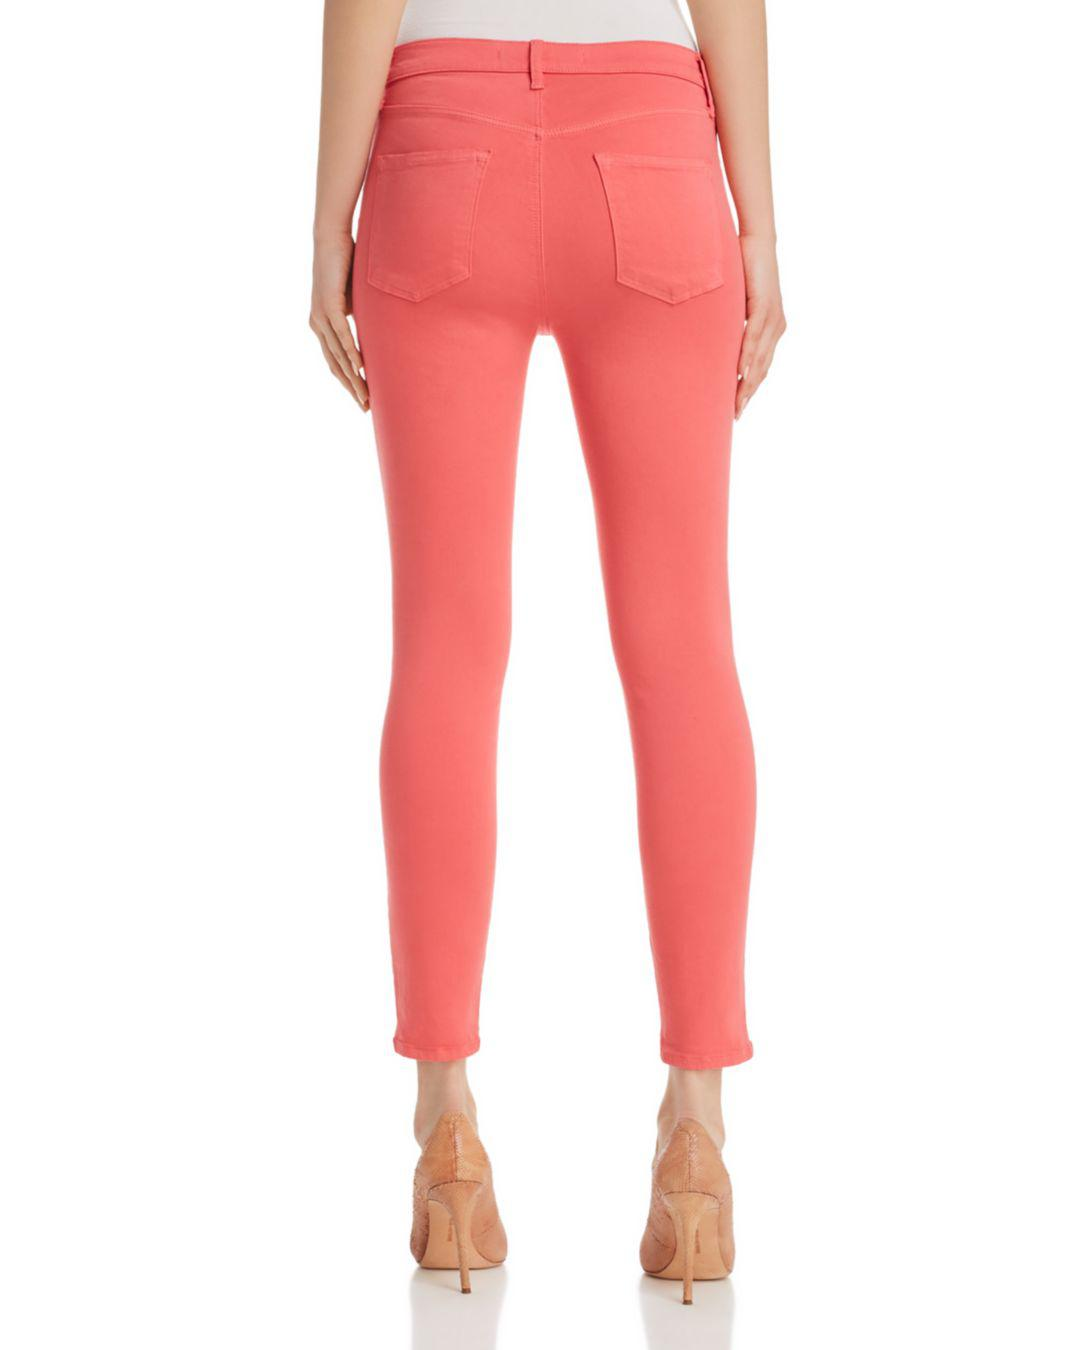 J Brand Denim Alana Photo Ready Skinny Jeans In Sedona Sunrise